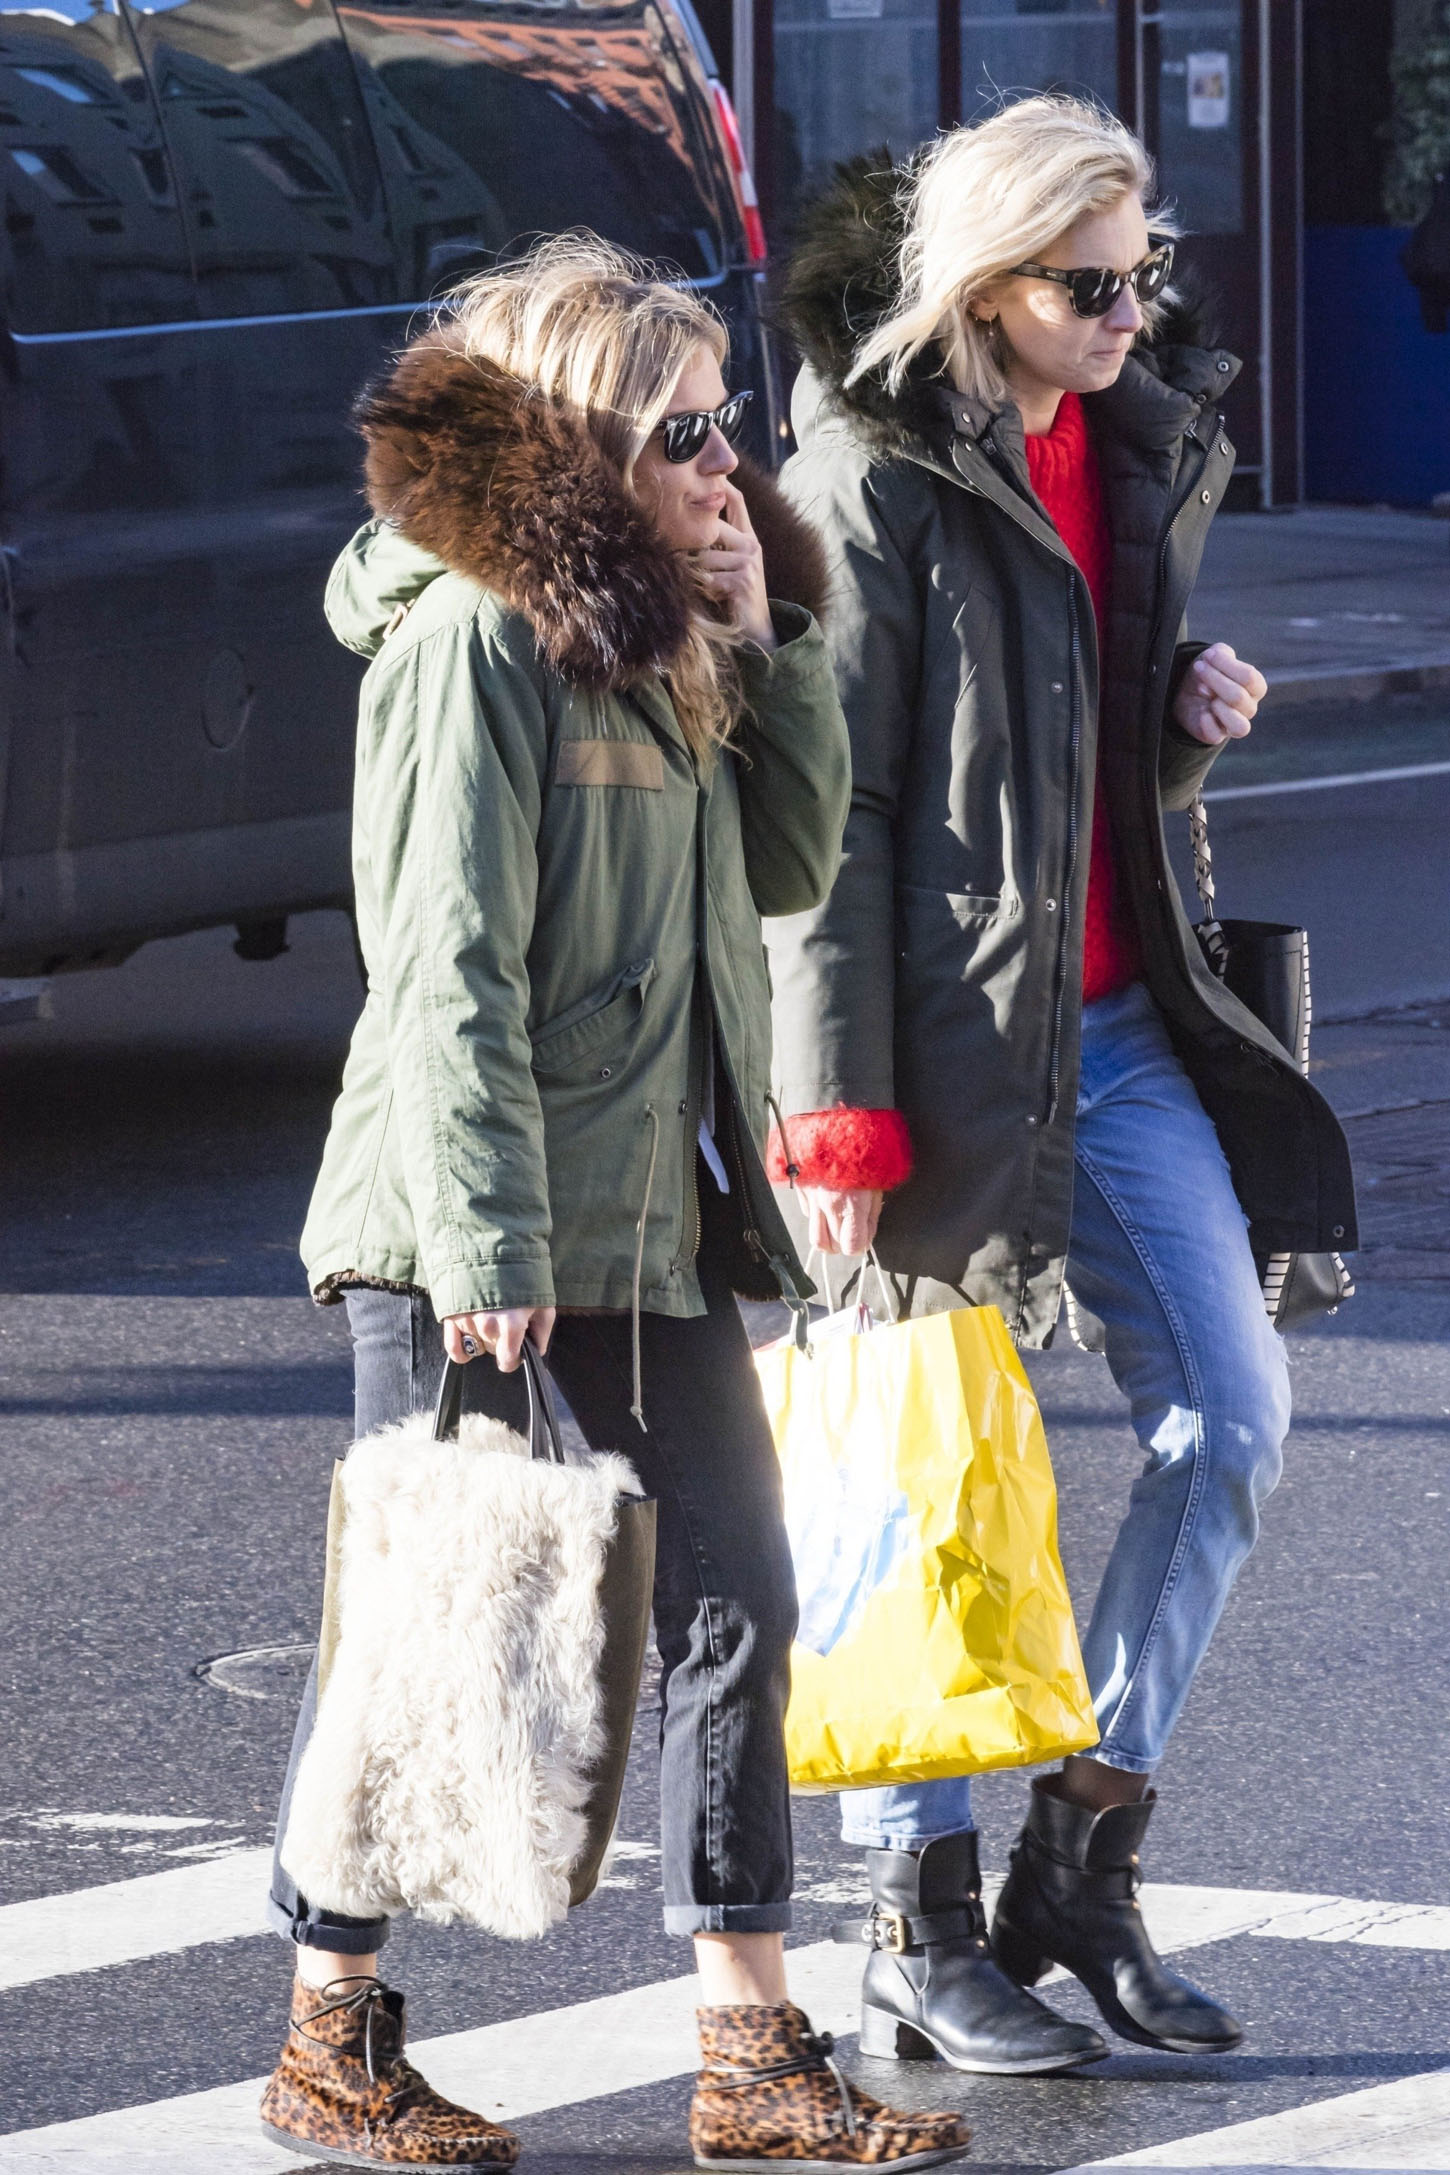 New York, NY  - *EXCLUSIVE* The always stylish Sienna Miller spotted in the